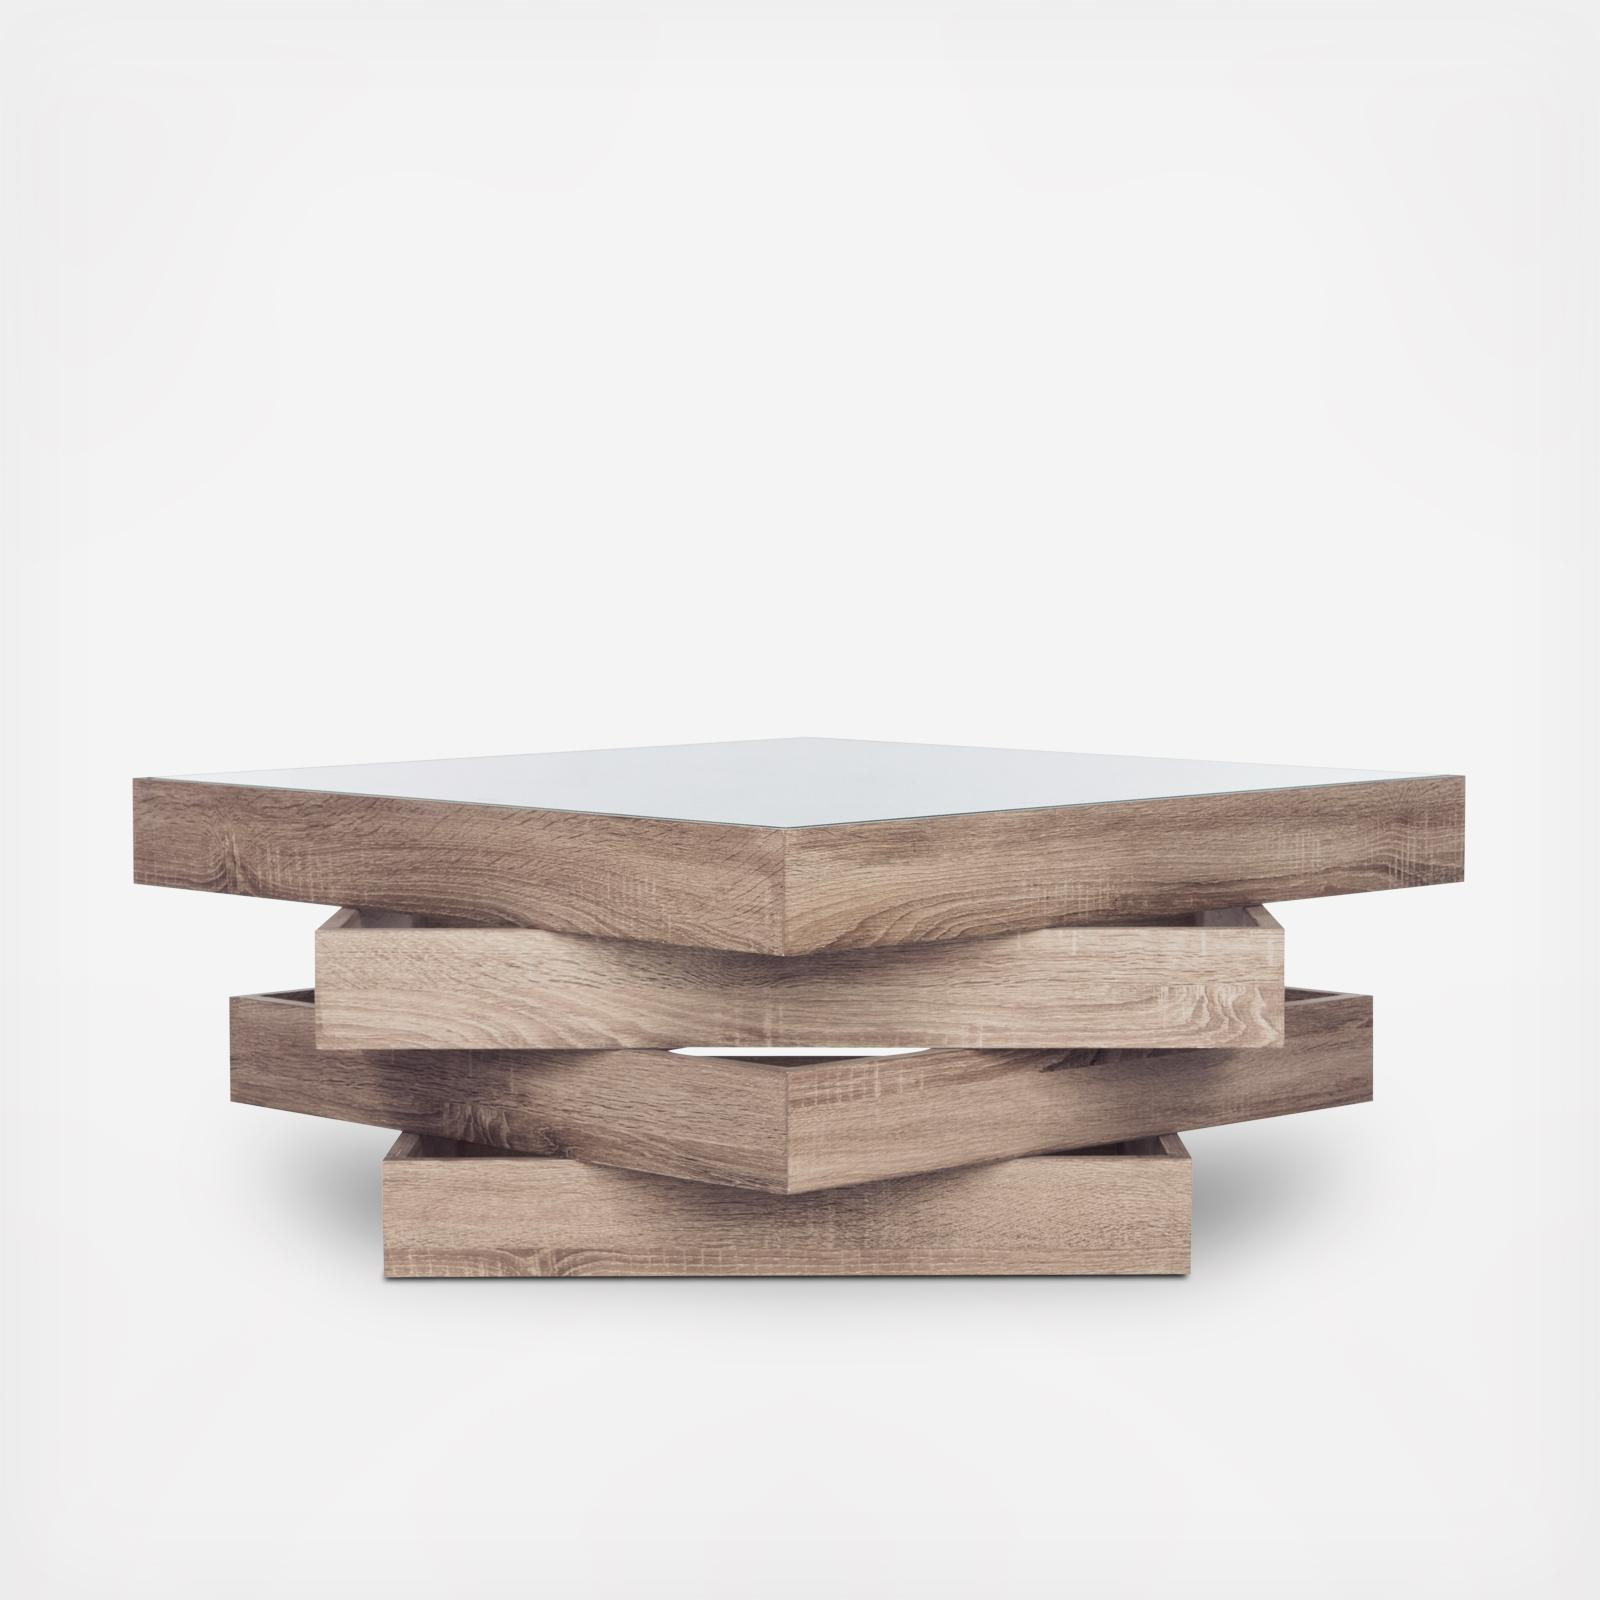 Wedding Planning, Registry & Gifts Within Well Known Safavieh Anwen Geometric Wood Coffee Tables (View 19 of 20)